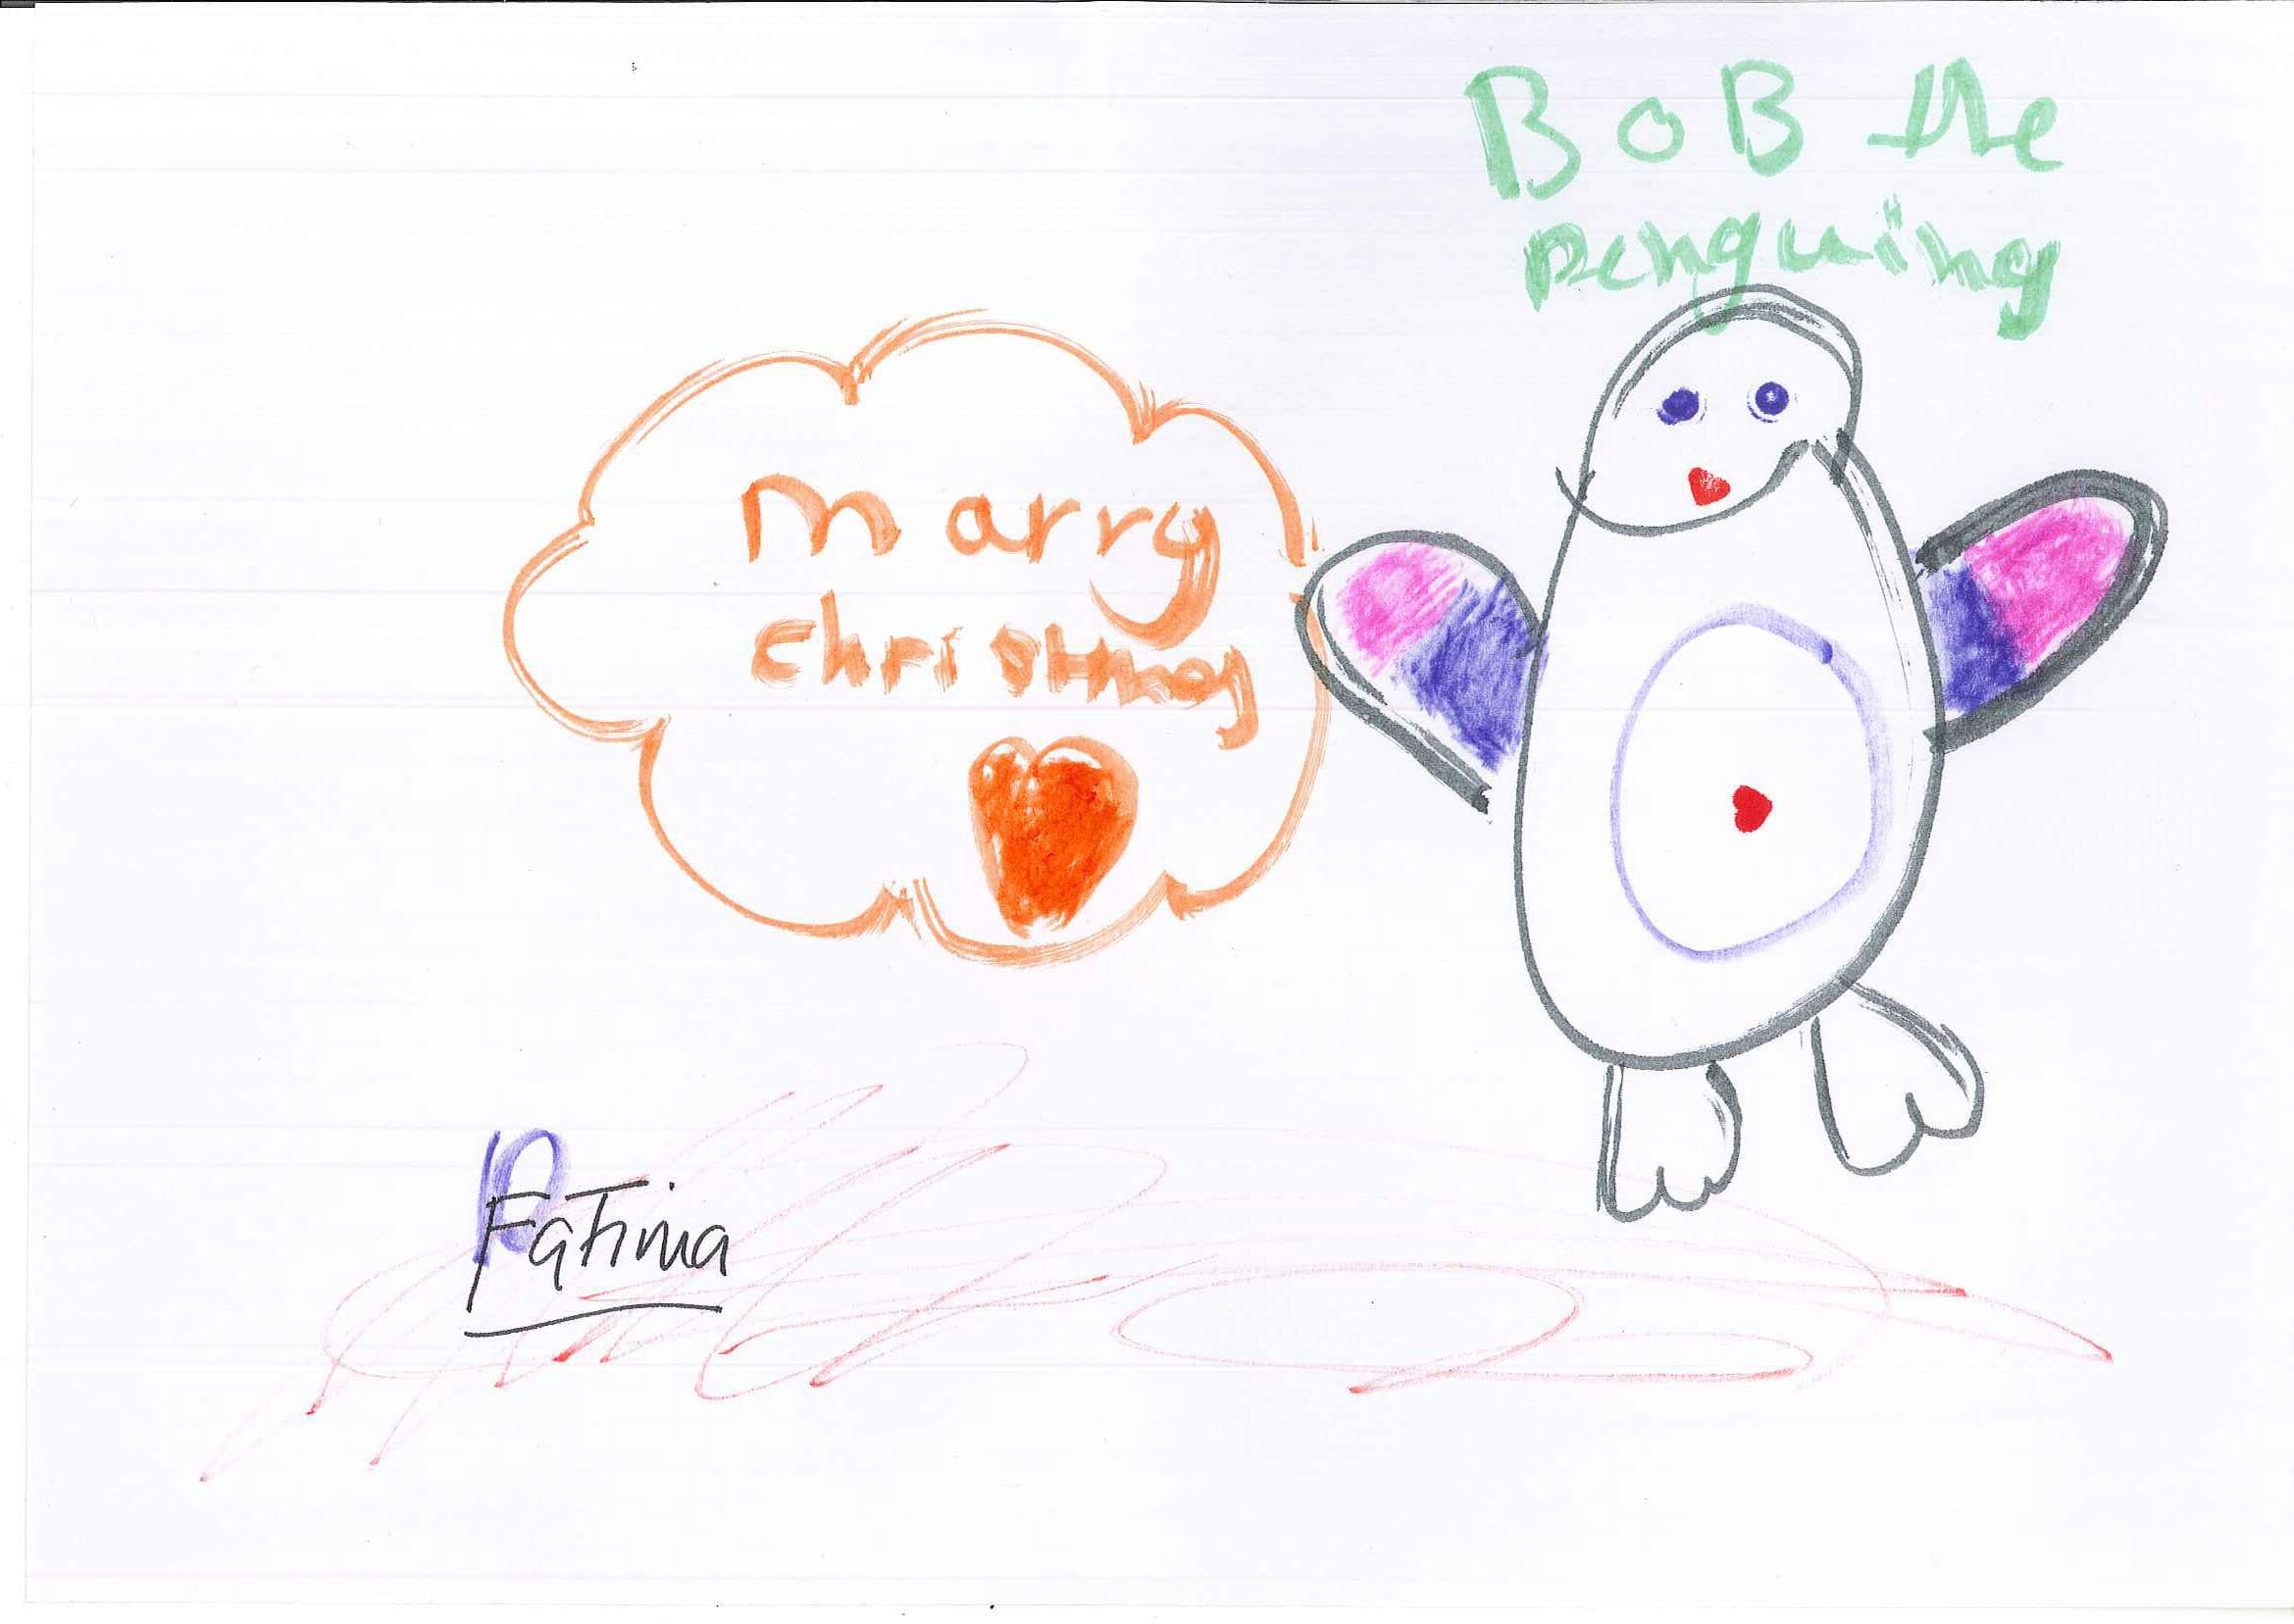 CHECT Christmas card competition - Fatima